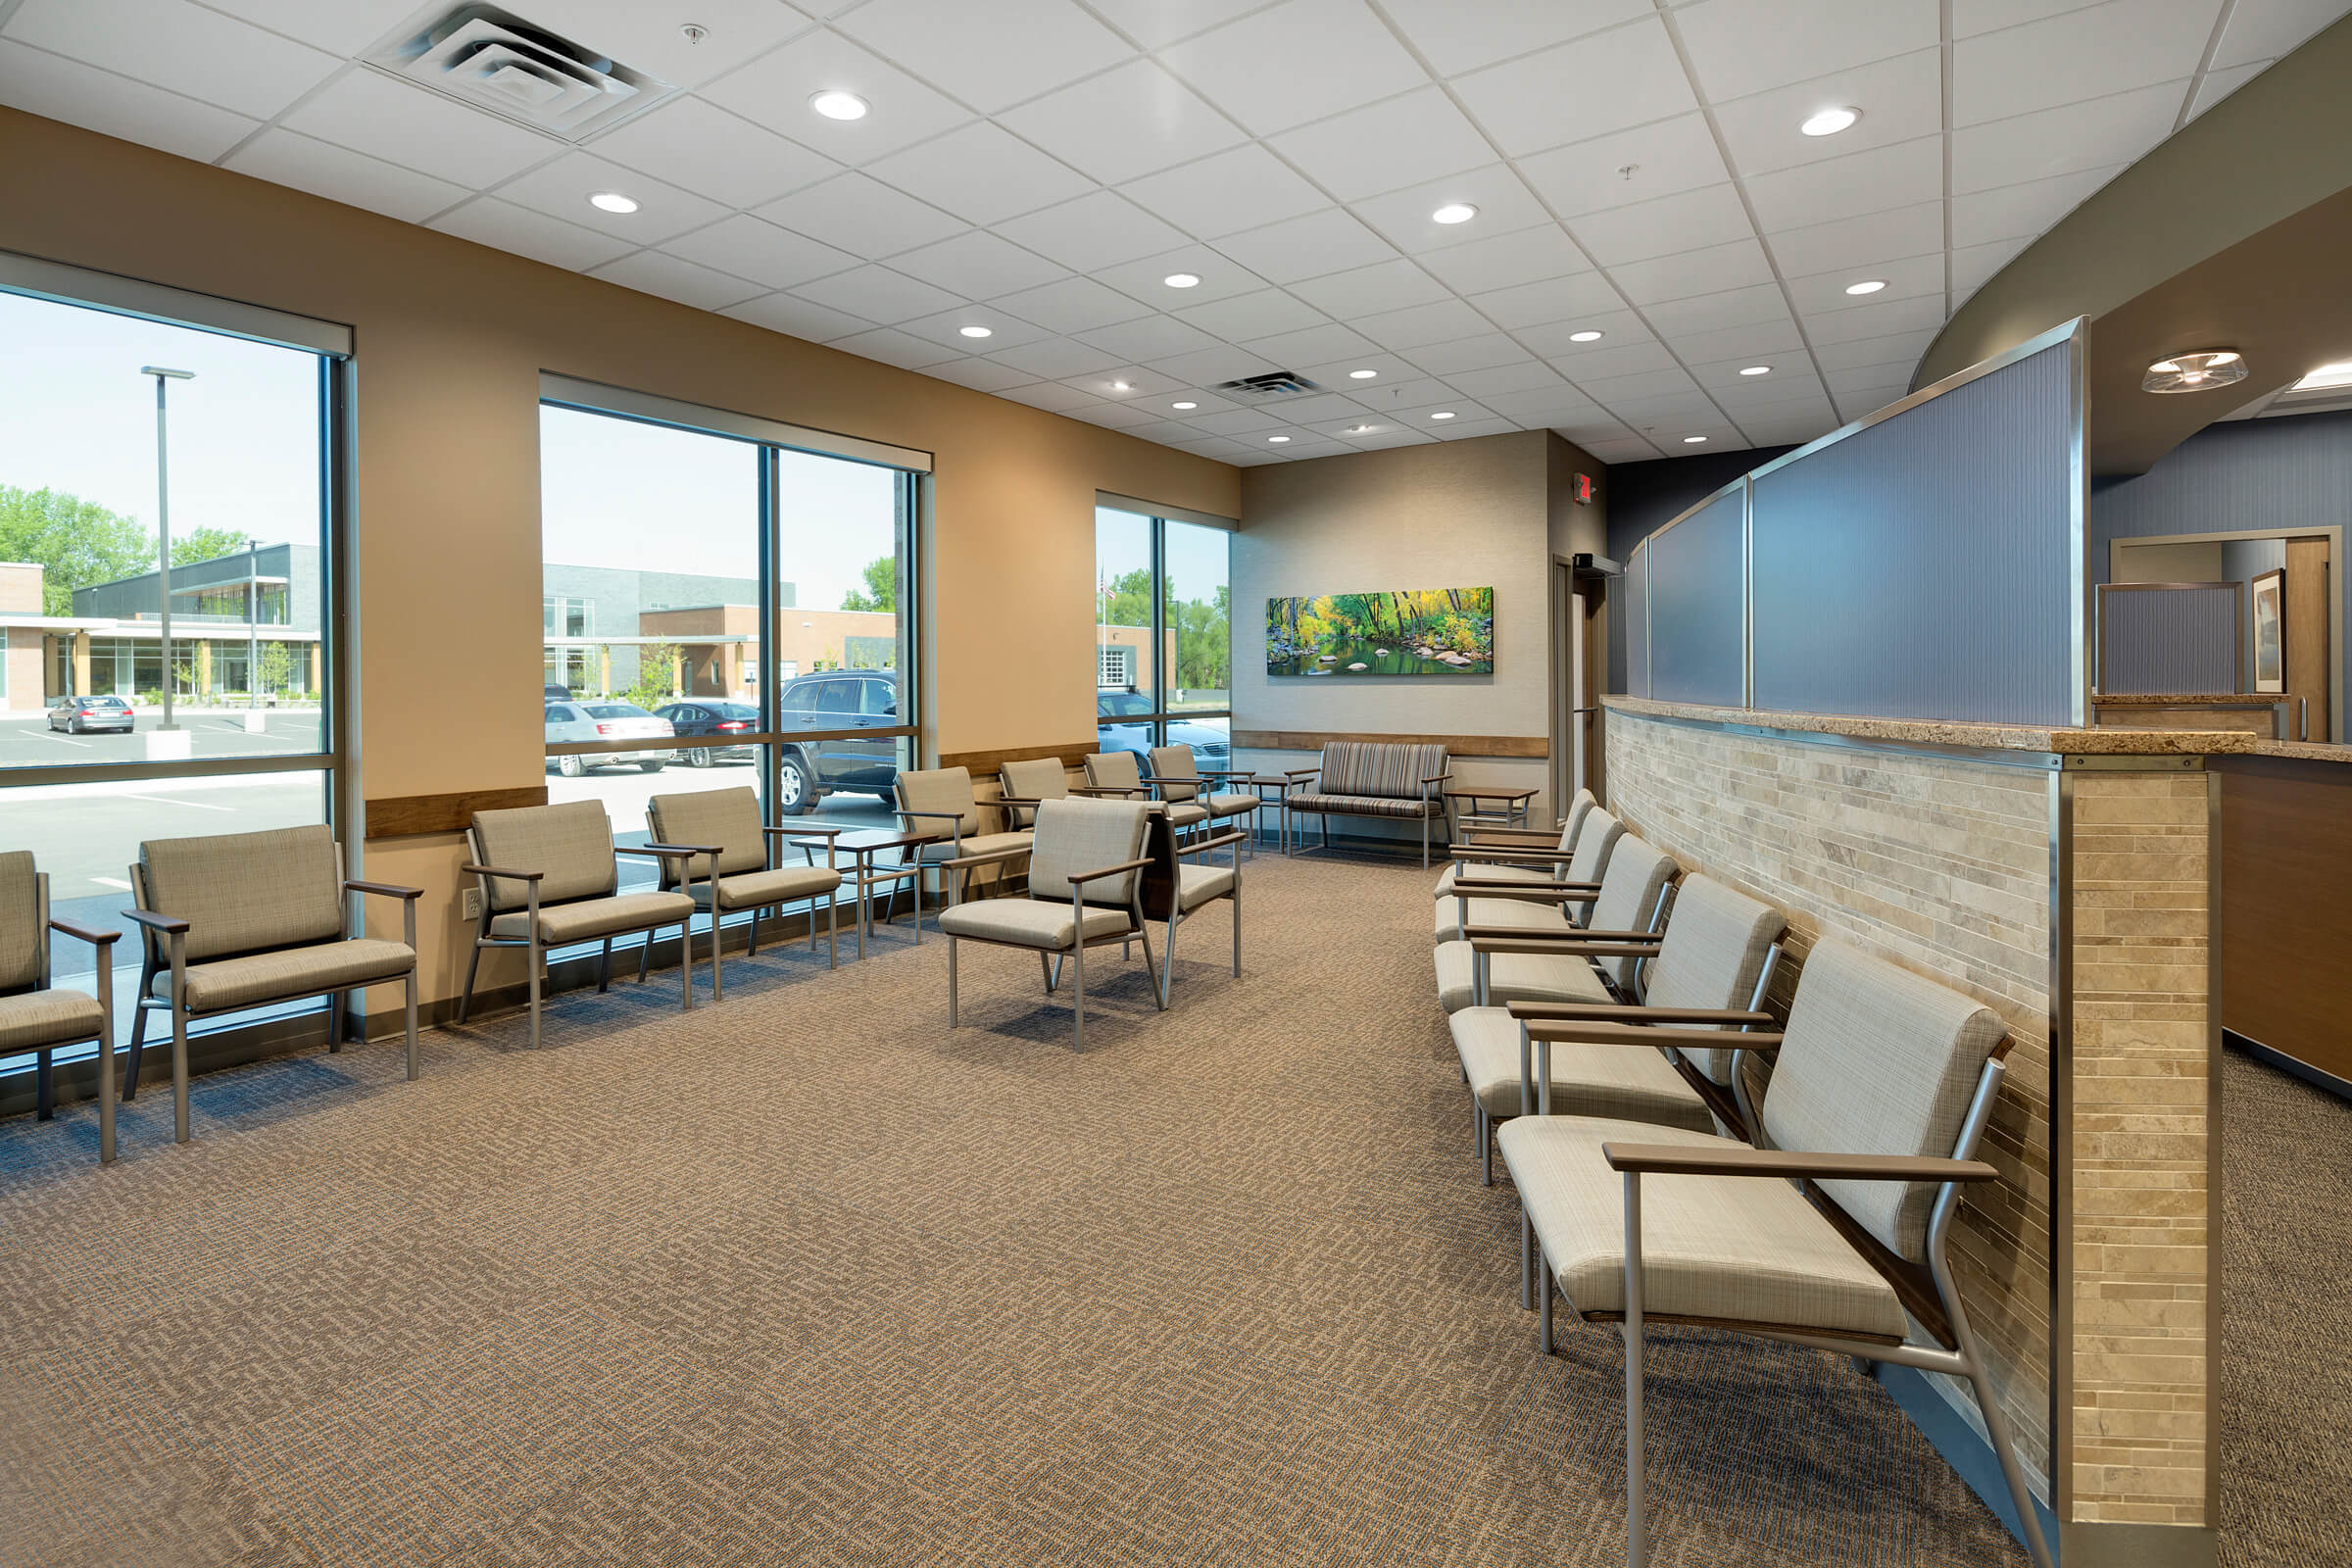 Maplewood Oral and Maxillofacial Surgery| Mohagen Hansen | Architecture | Interior Design | Minneapolis